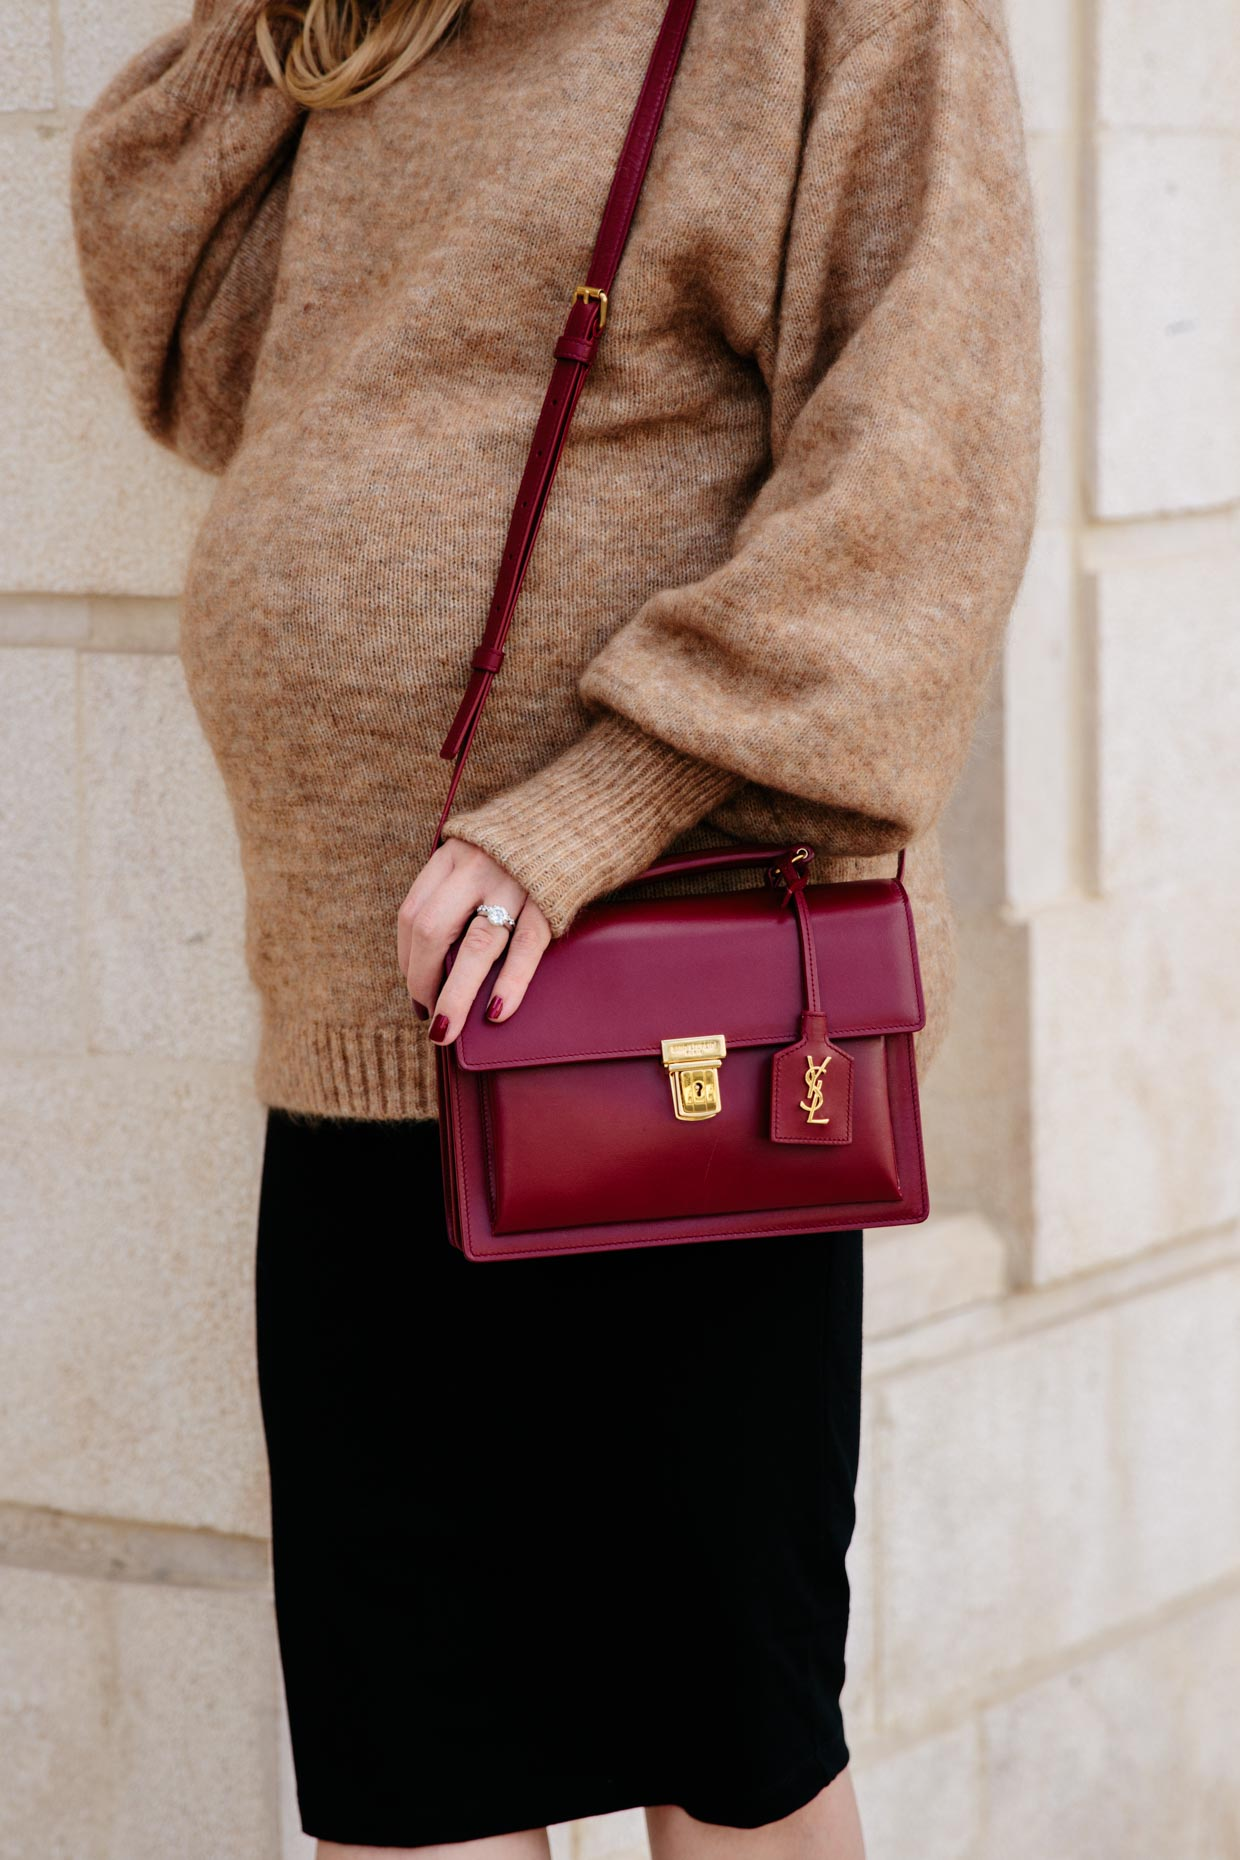 8fc45eb1db2 Saint Laurent High School bag oxblood, camel sweater with black skirt and  red bag outfit